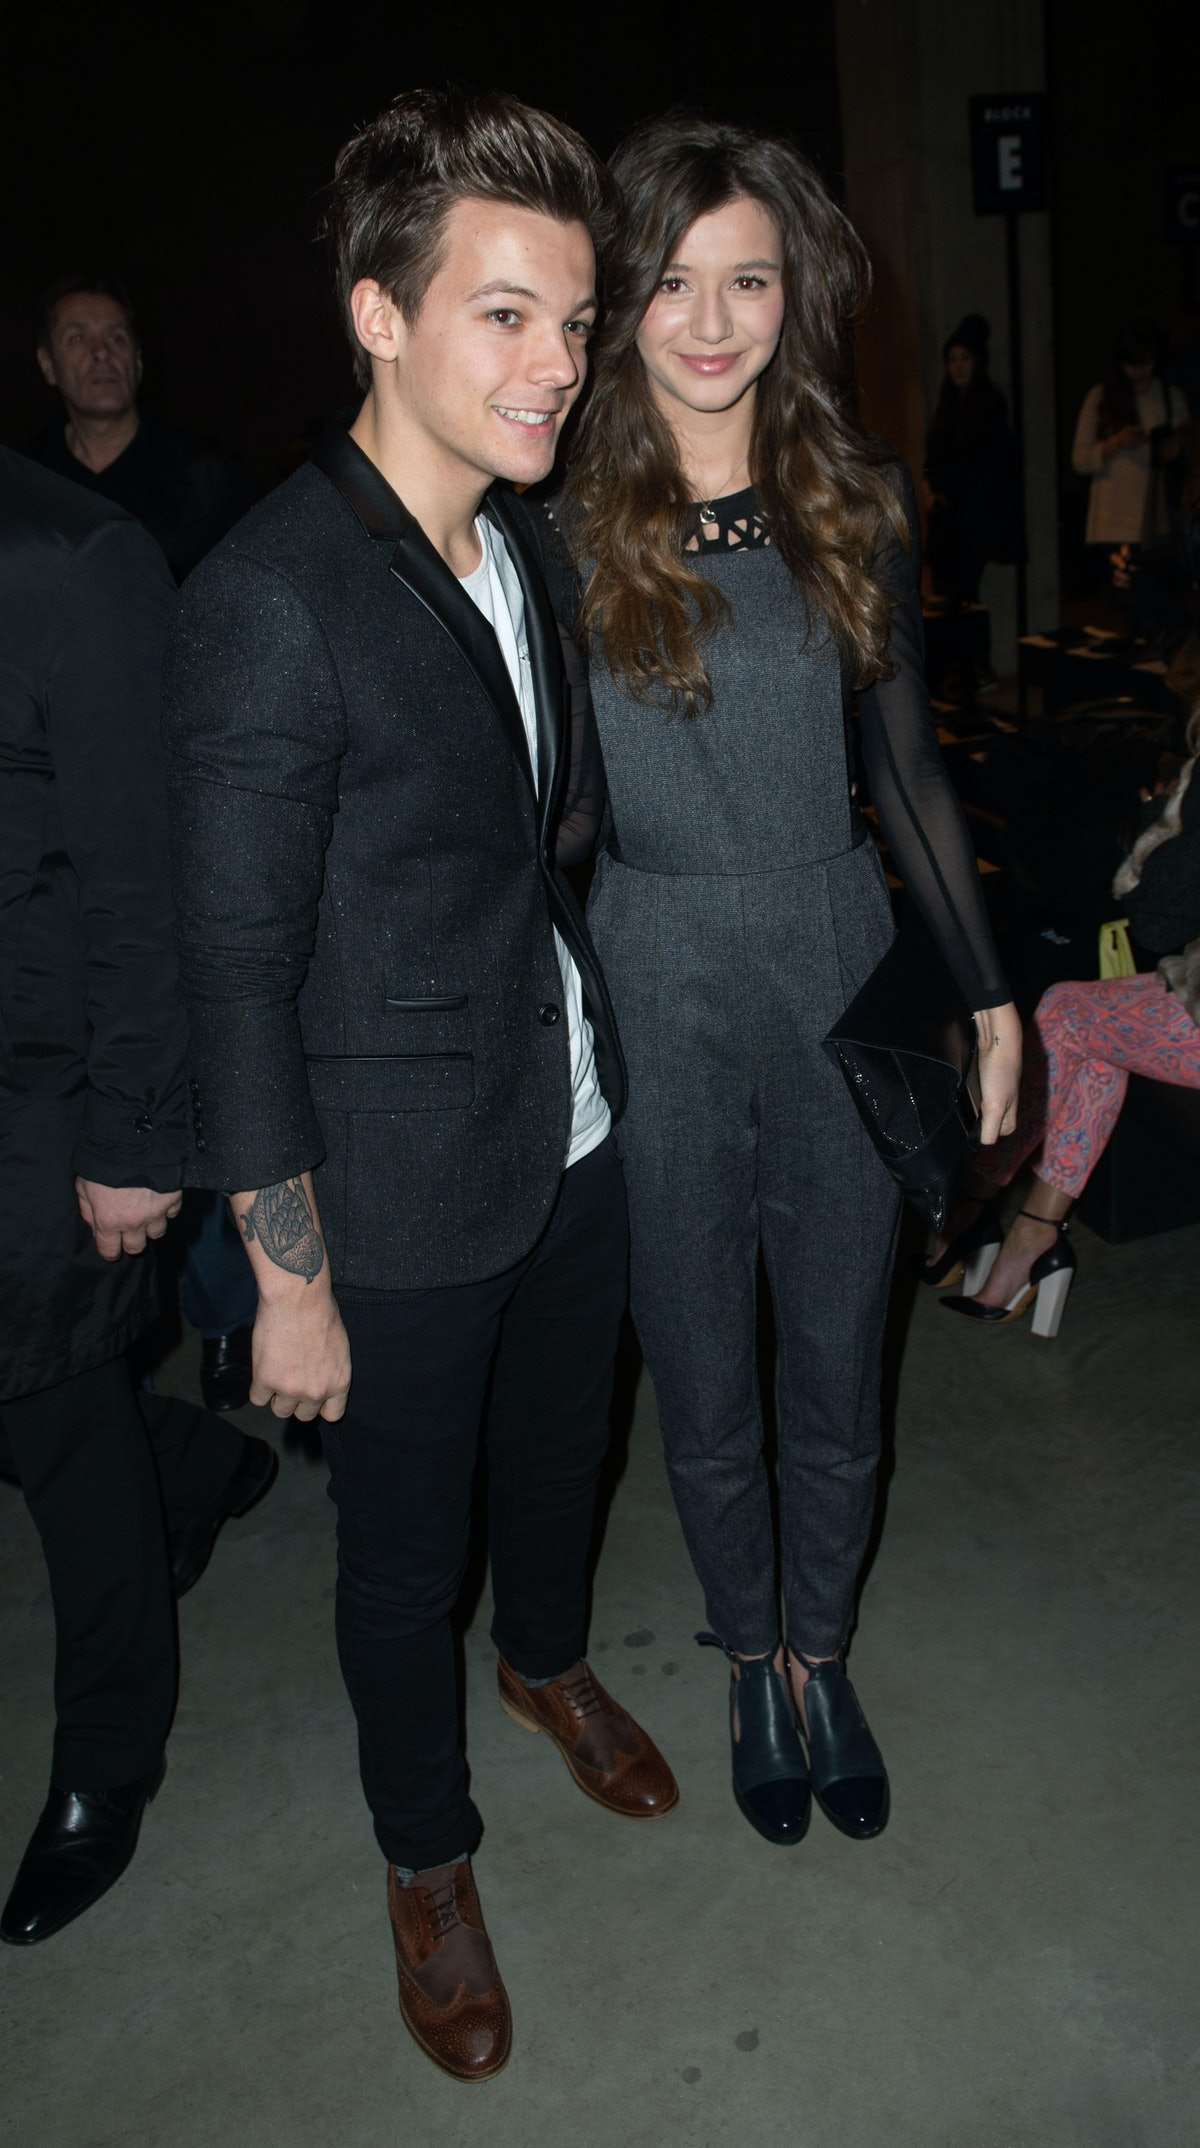 LONDON, ENGLAND - FEBRUARY 17:  Louis Tomlinson from One Direction and Eleanor Calder attend the Topshop Unique show at the Tate Modern during London Fashion Week Fall/Winter 2013/14 on February 17, 2013 in London, England. (Photo by Samir Hussein/Getty Images)